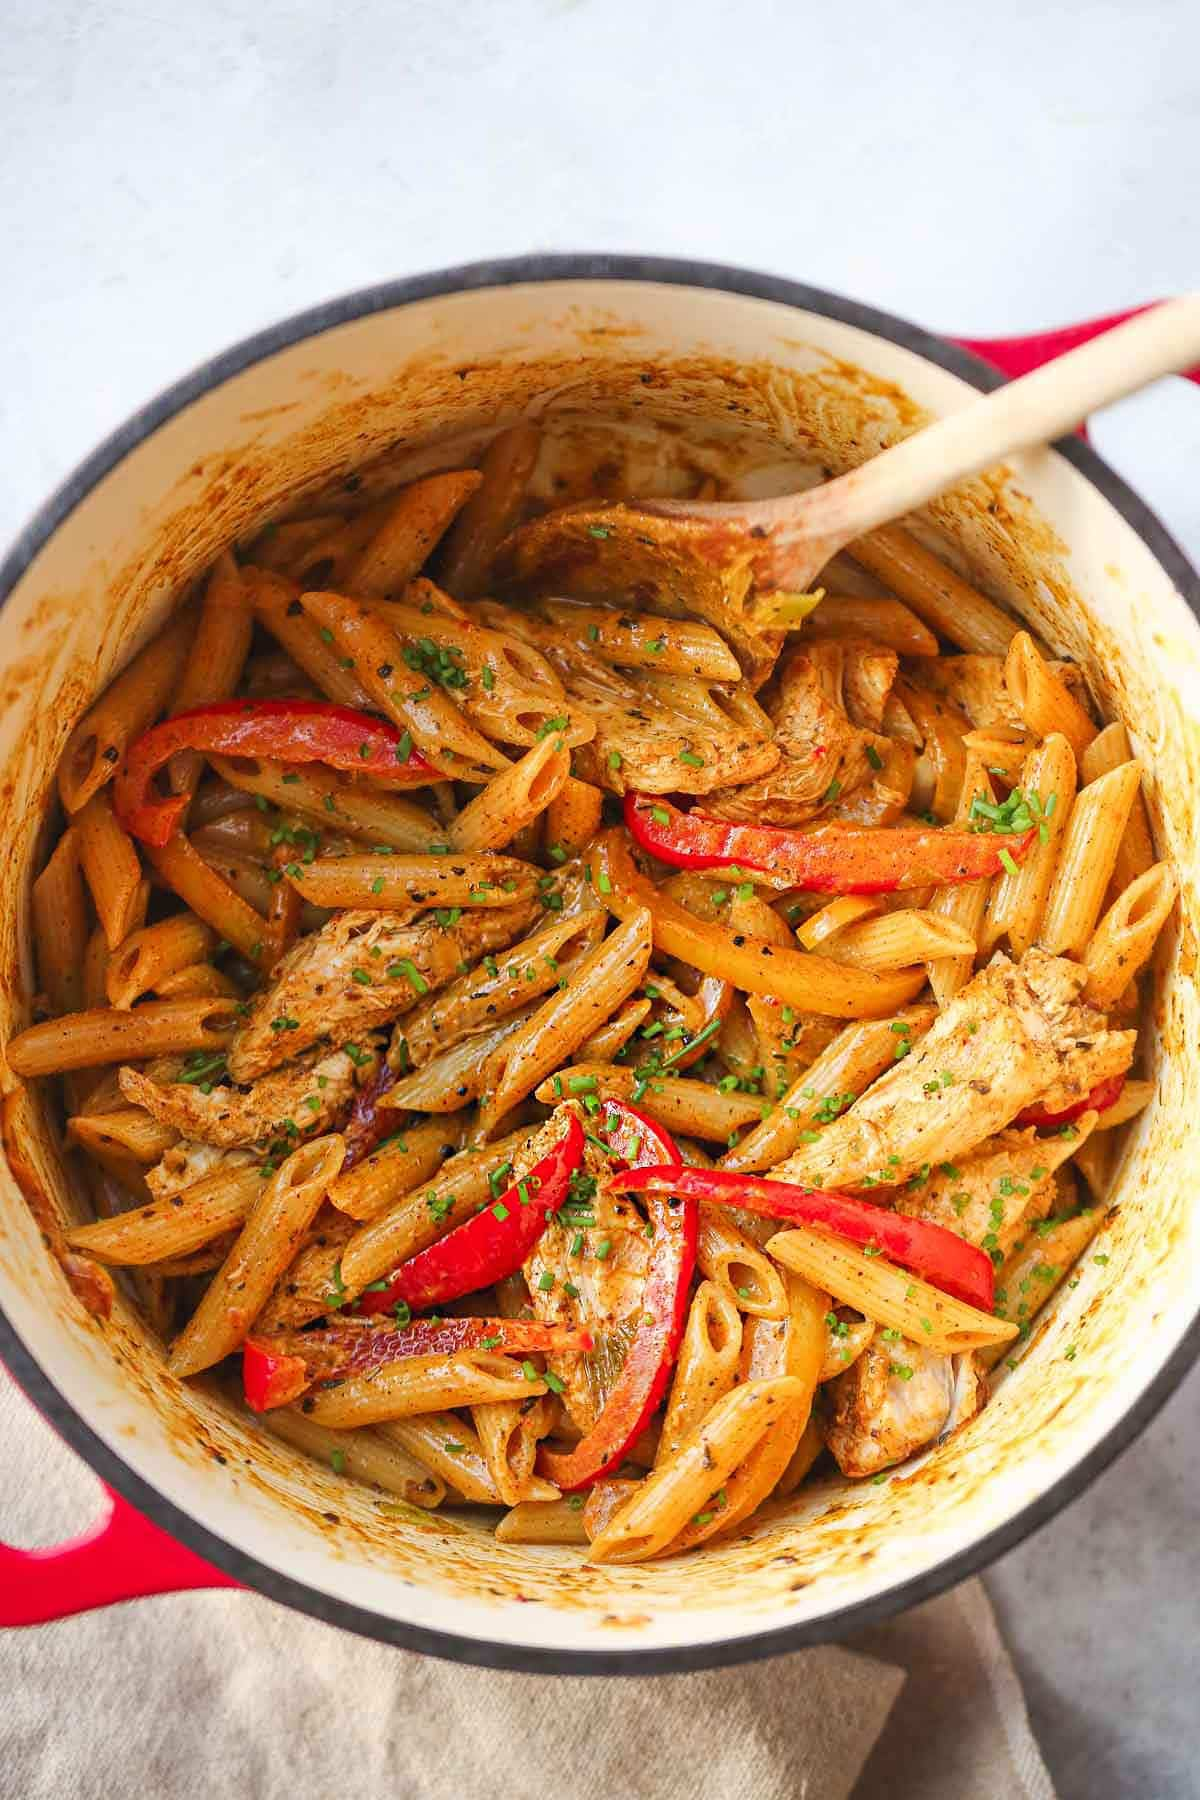 Rasta Pasta in a red cast iron pot with a wooden spoon